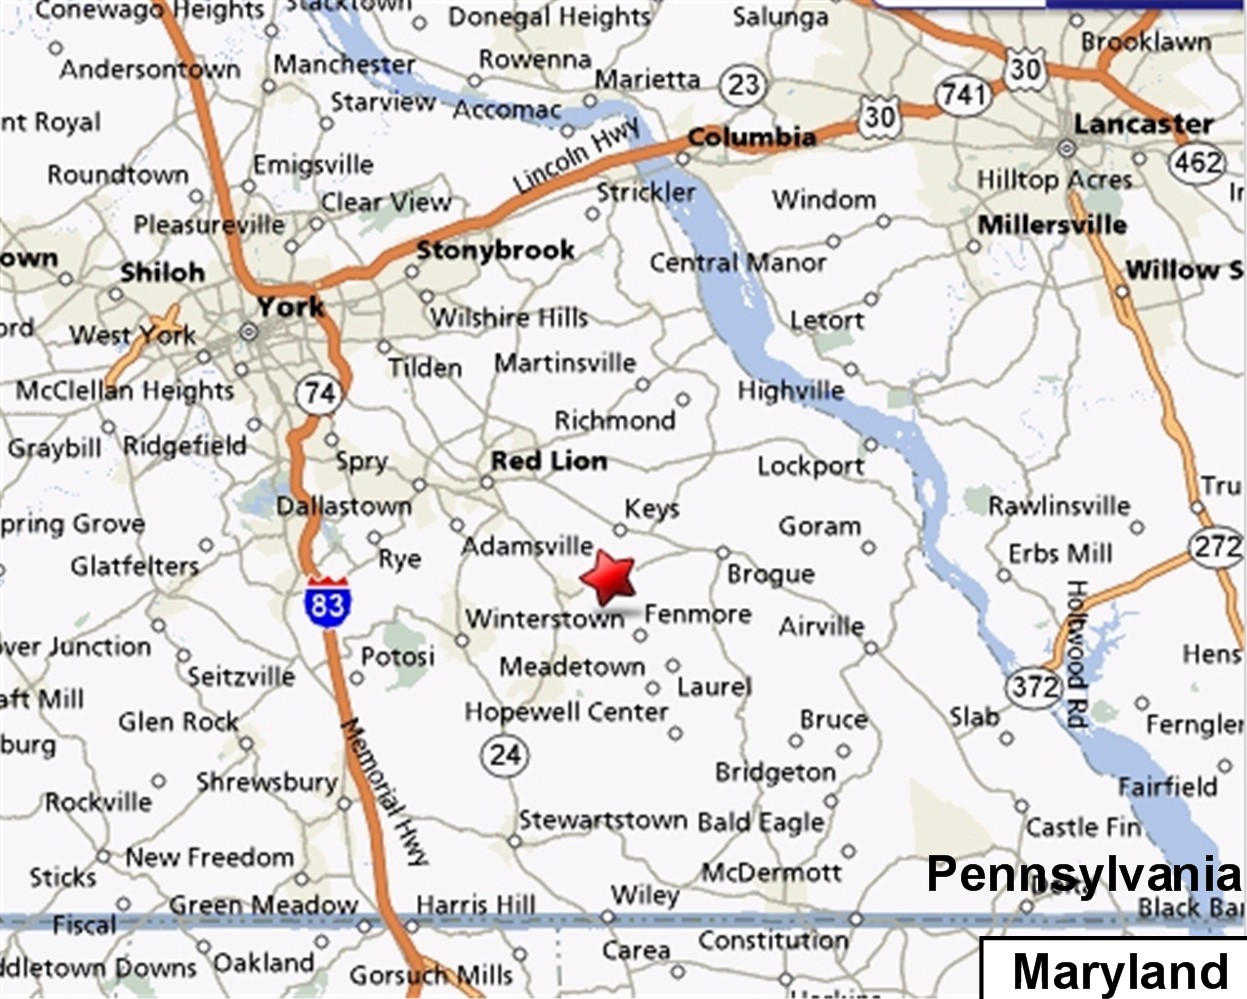 Contact Information on events of york county pa, map of york college pa, somerset county, cumberland county, map of chester county pa, cities in lebanon county pa, map of york city pa, lancaster county, chester county, allegheny county, schuylkill county, map of york county ne, map of san diego county ca, adams county, map of new castle county de, map of franklin county pa, washington county, franklin county, map of mckean county pa, map of york county nc, map of erie county pa, monroe county, map of baltimore county pa, map of pennsylvania, montgomery county, dauphin county, delaware county, map of potter county pa, map of adams county pa, map of cumberland county pa, map of douglas county or, map of warren county pa, map of grafton, il,